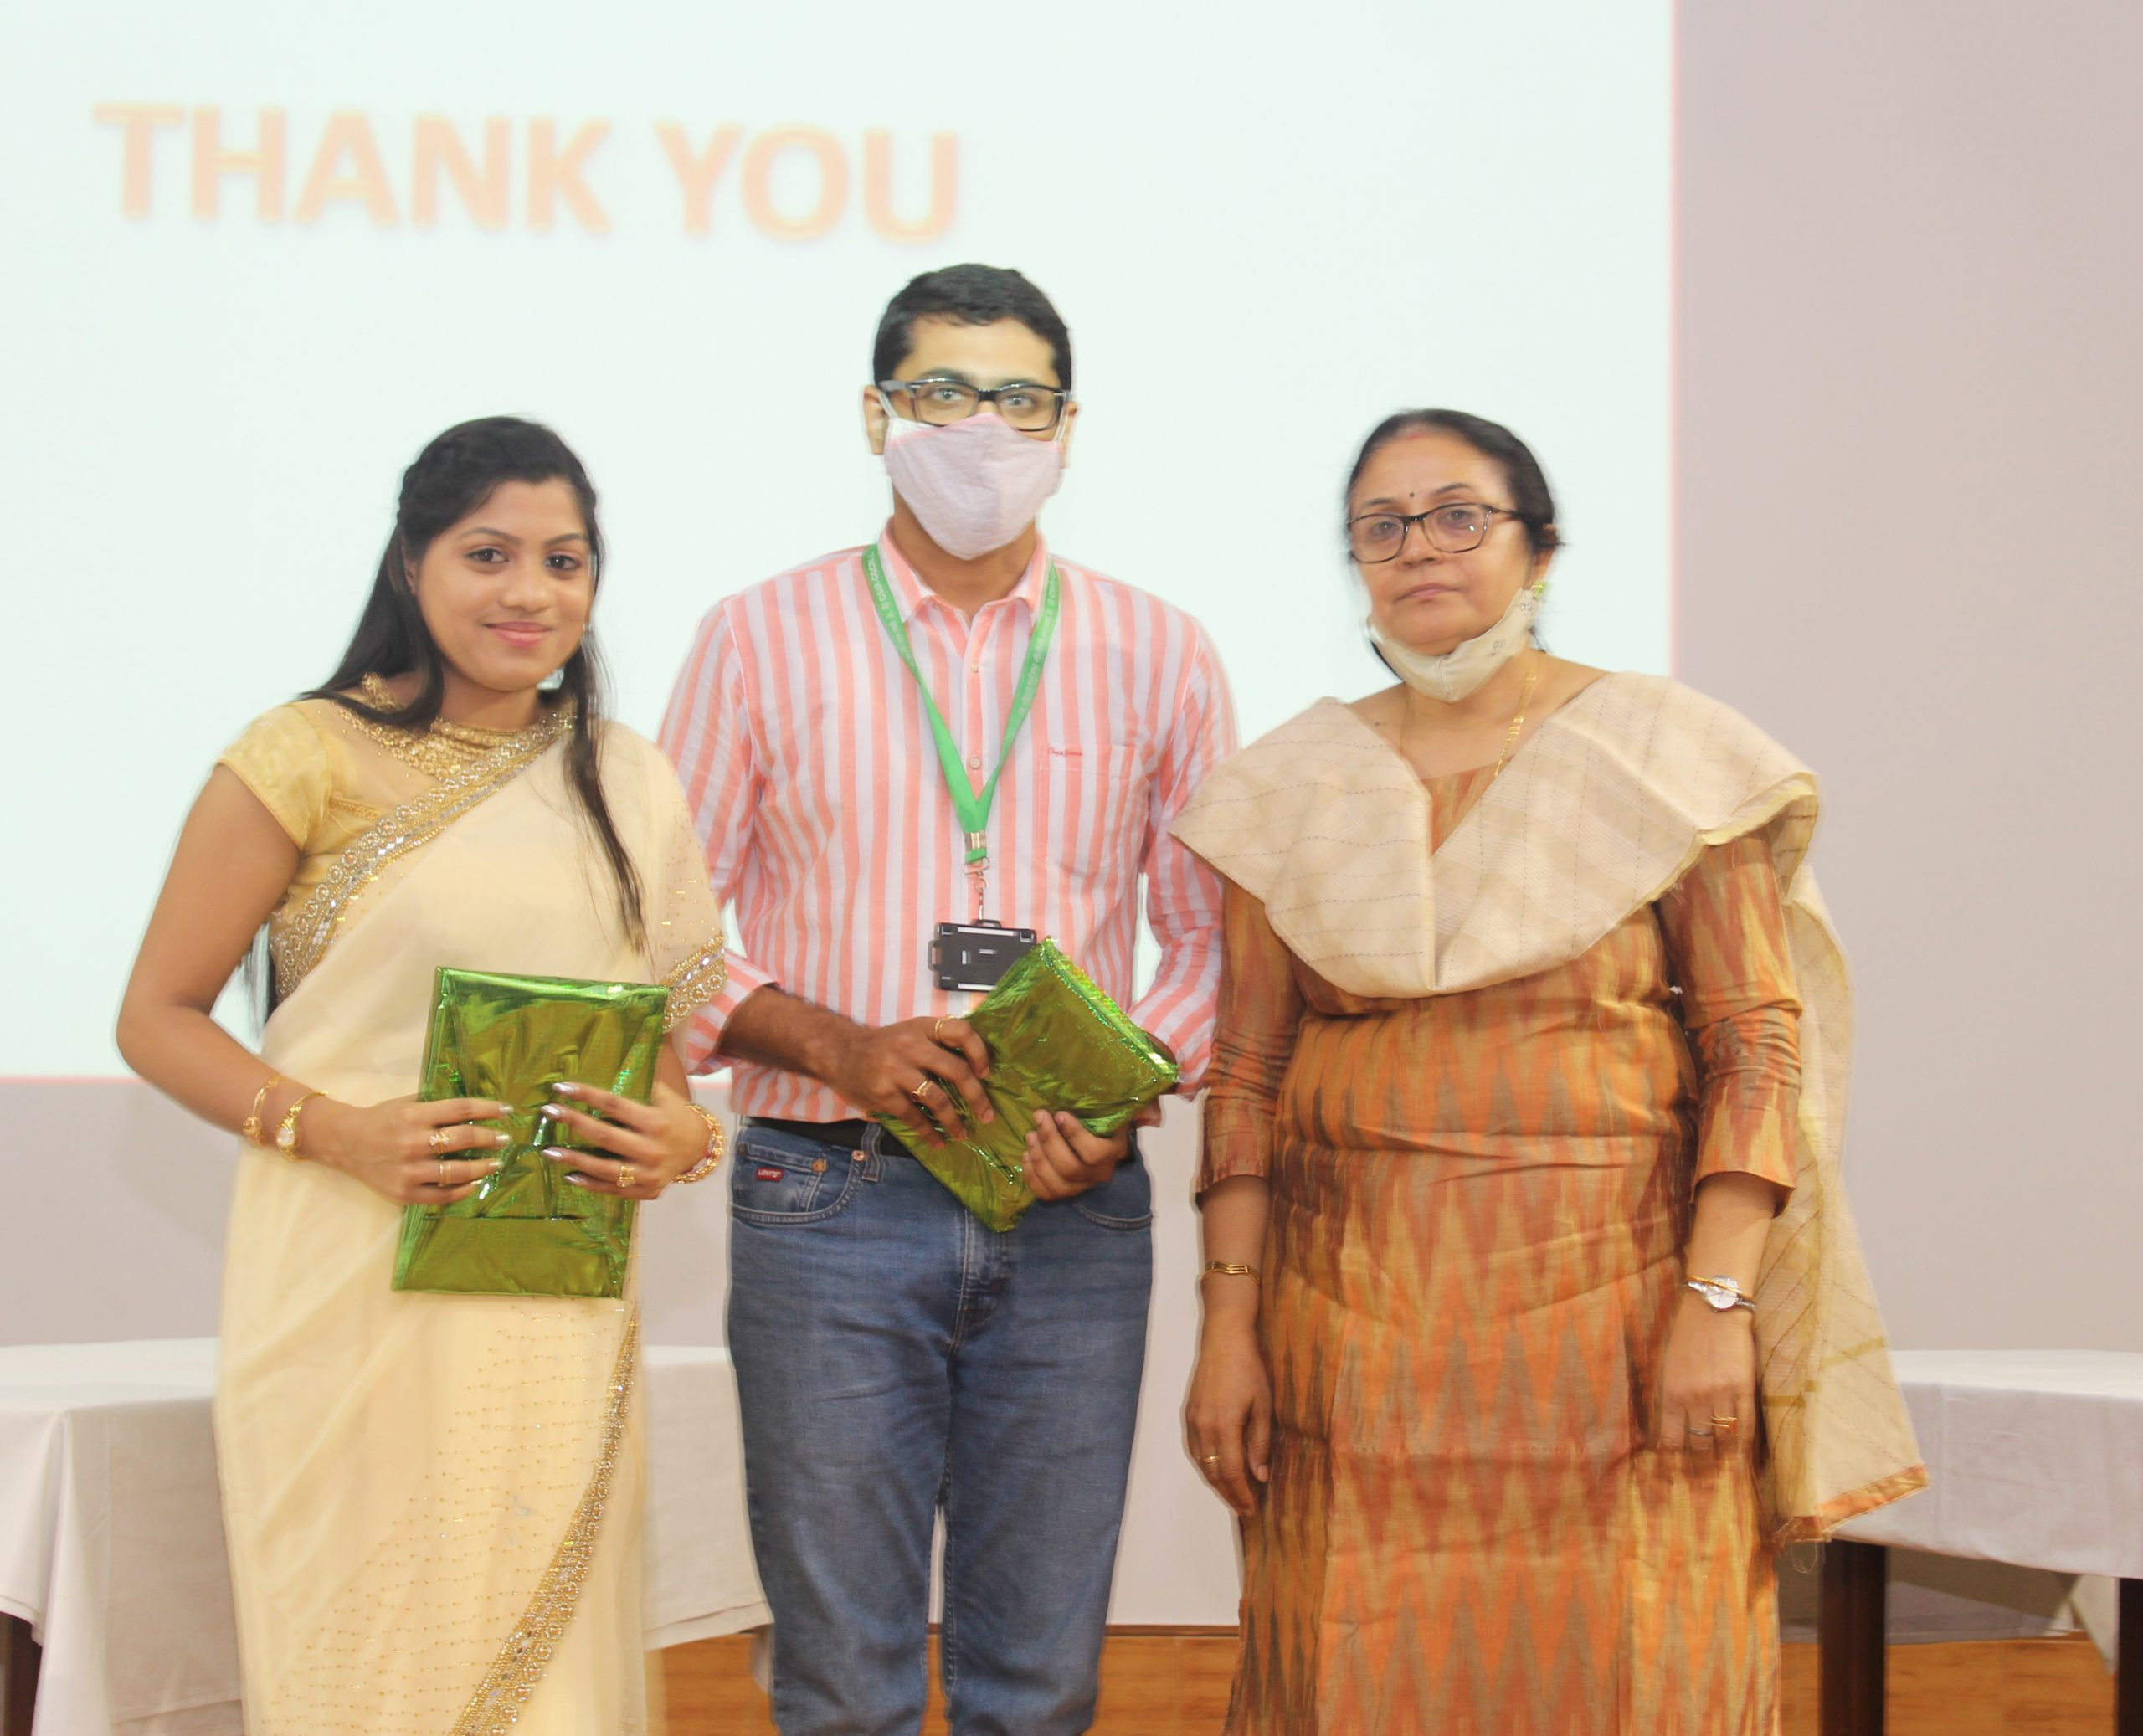 Director along with the two Speakers of the National Science Day- Ms Karthiga P, JRF-GATE and Mr Nirman Chakraborty, SRF-INSPIRE